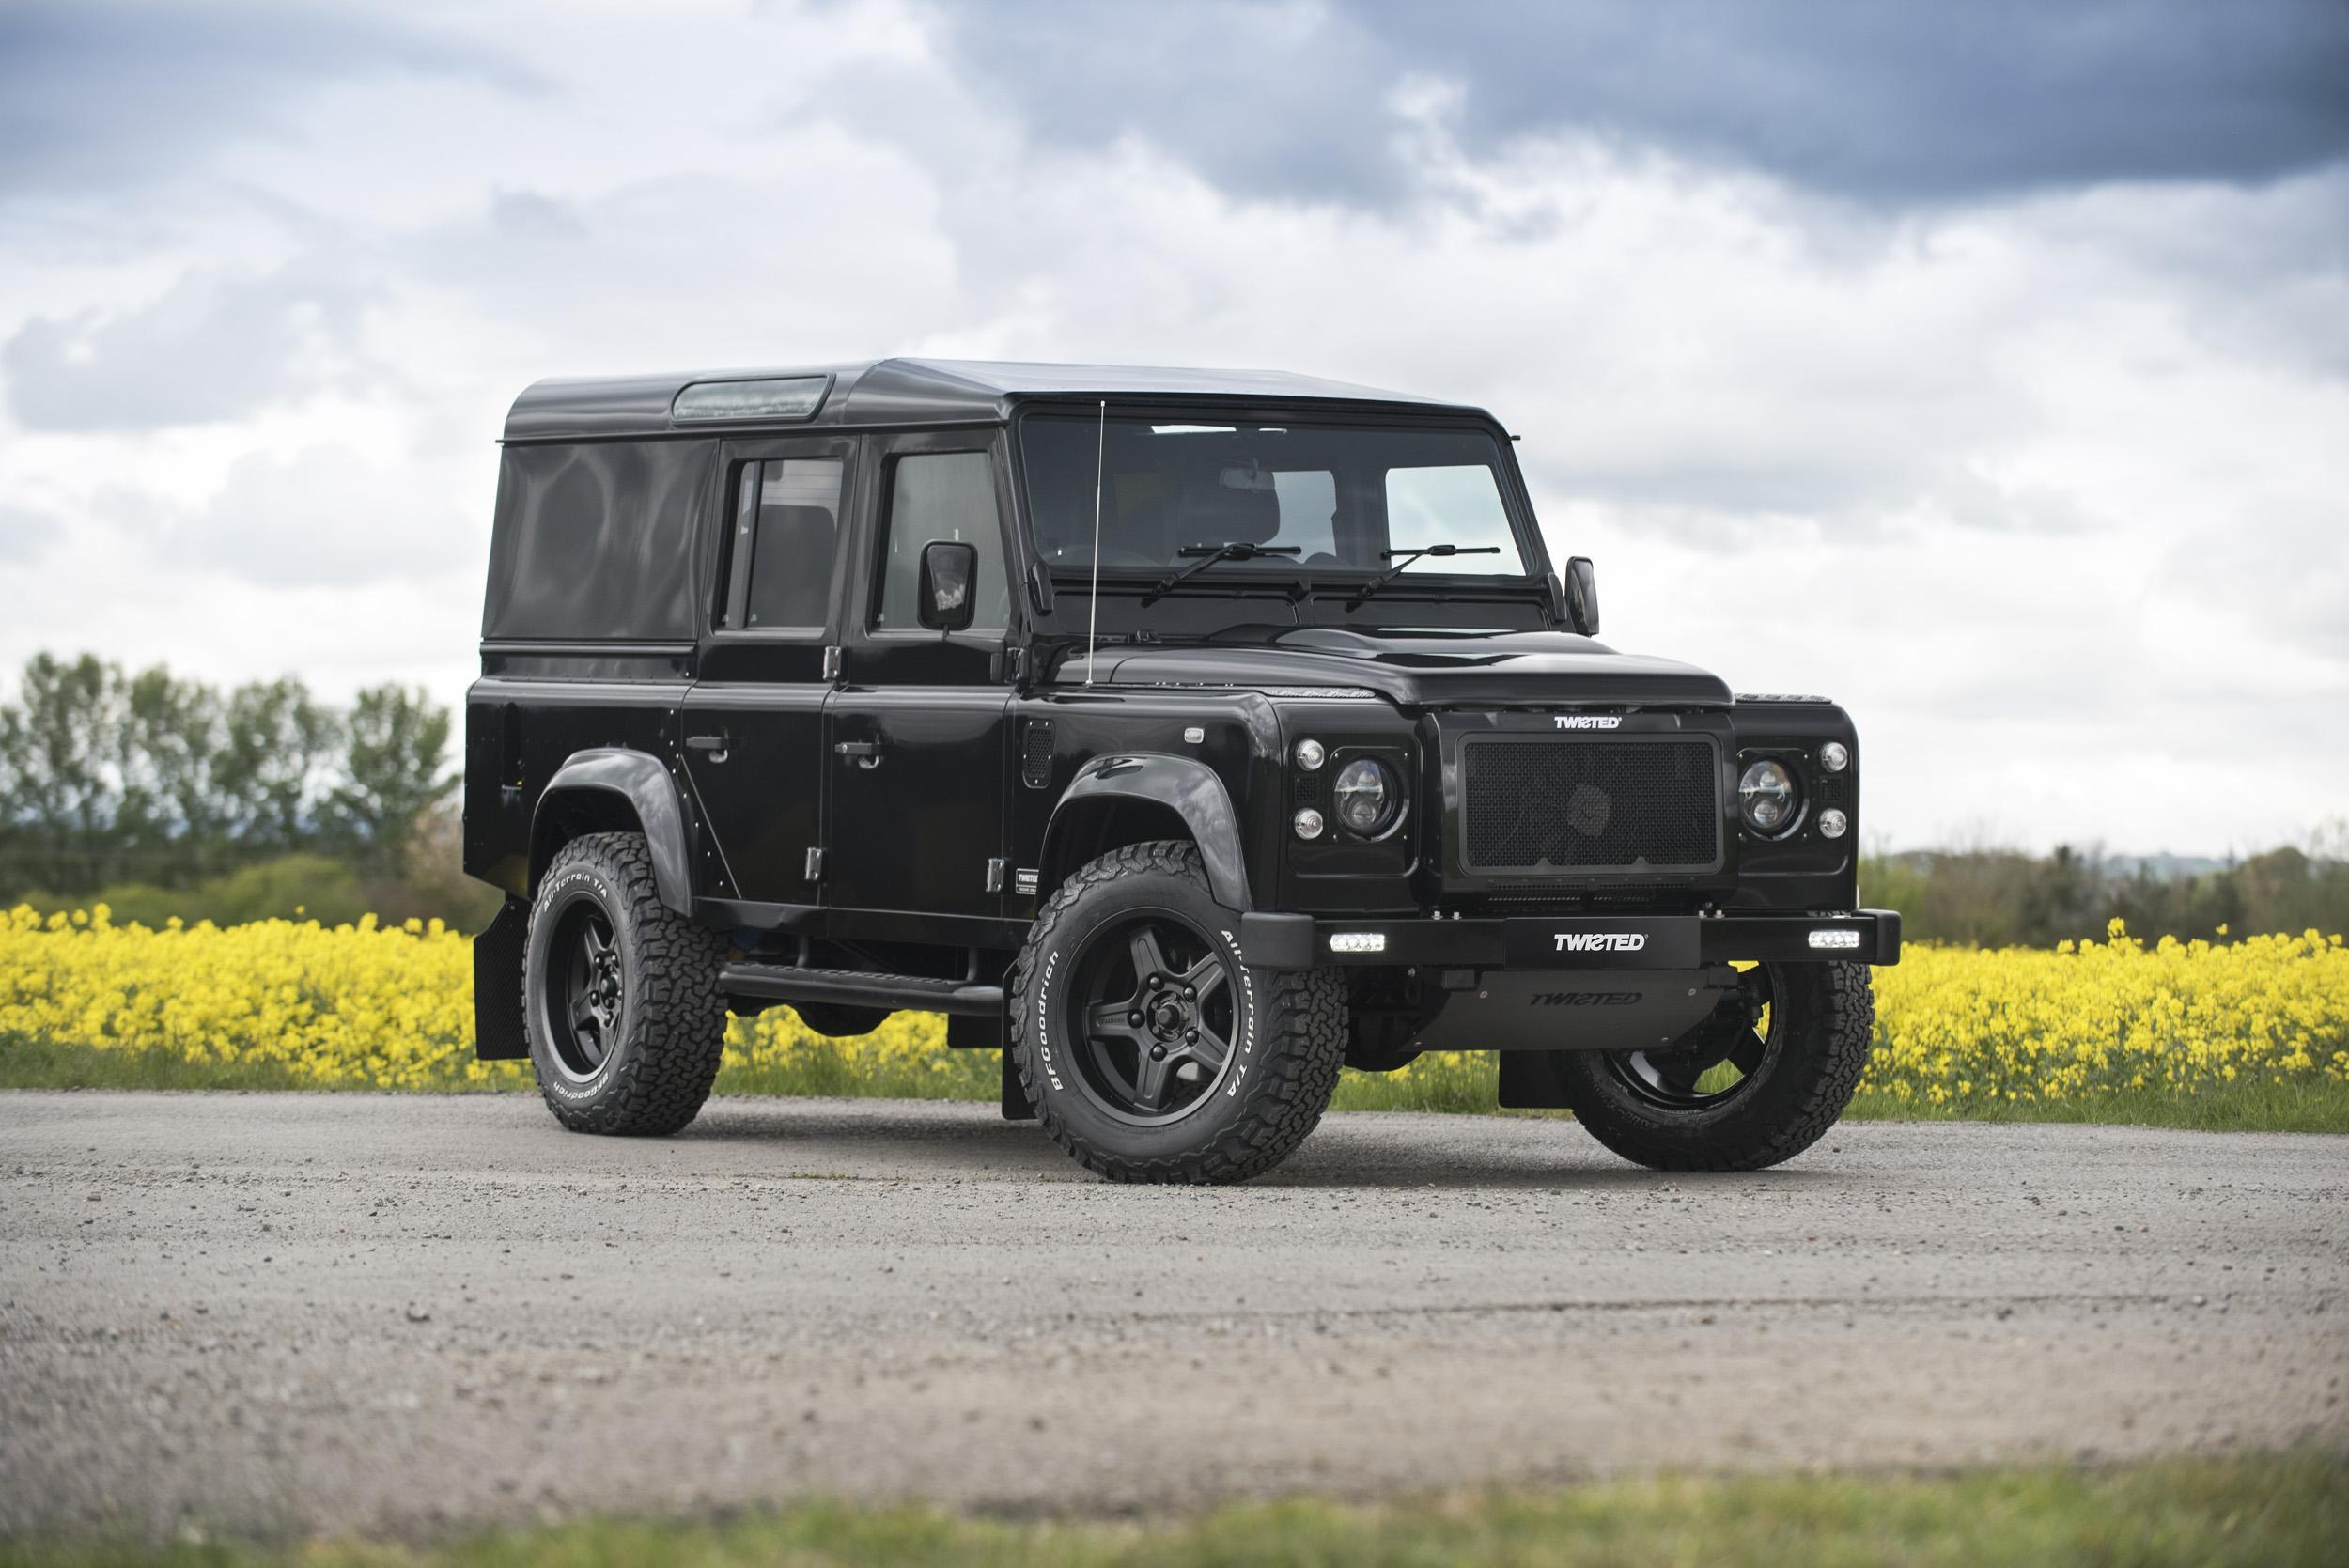 Car Review Twisted Land Rover Defender 110 Utility The